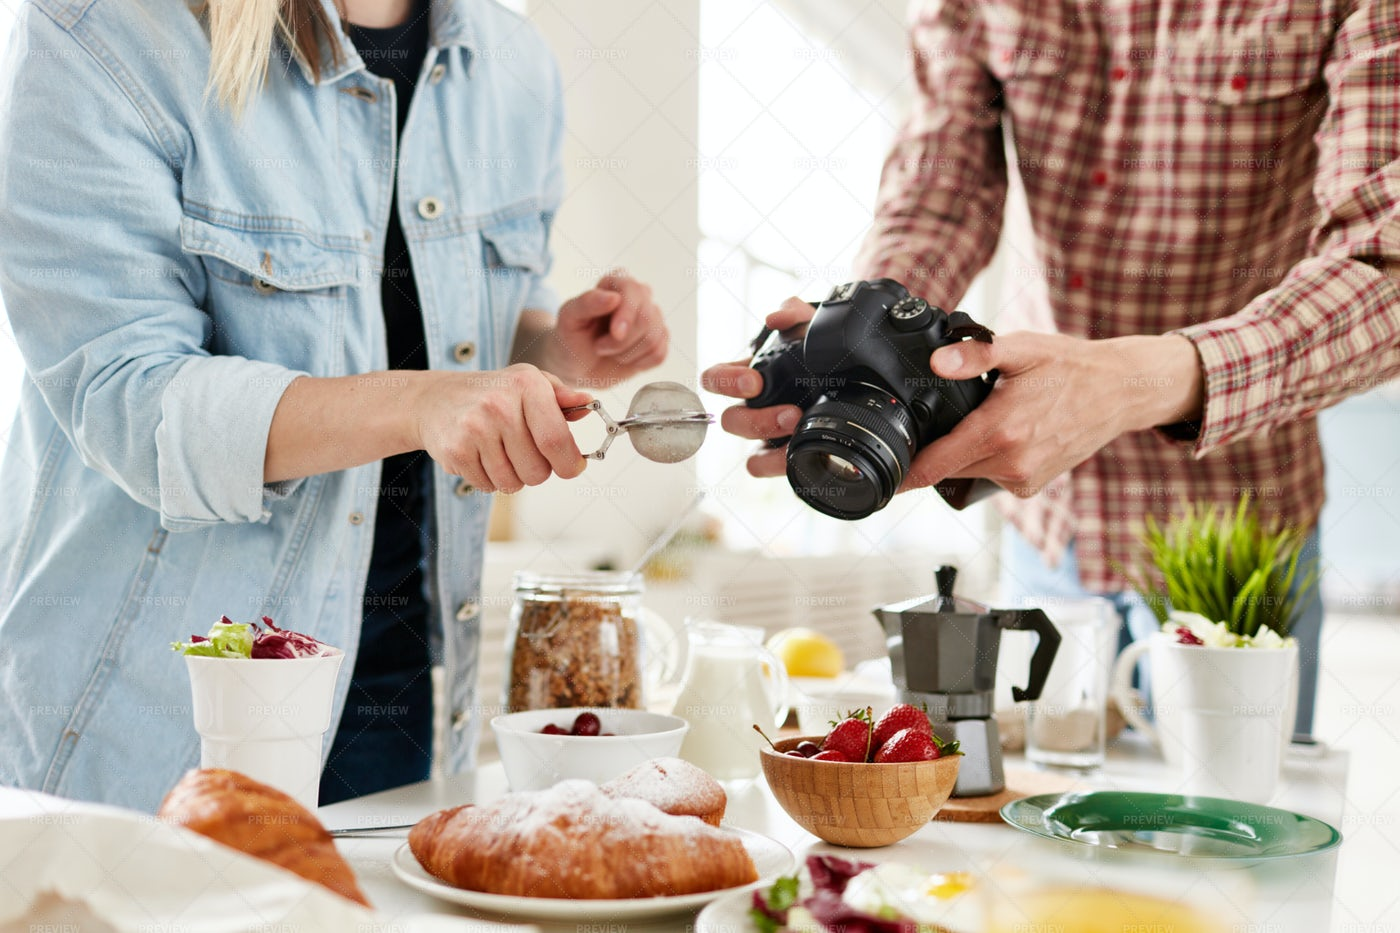 Food Styling Industry: Stock Photos